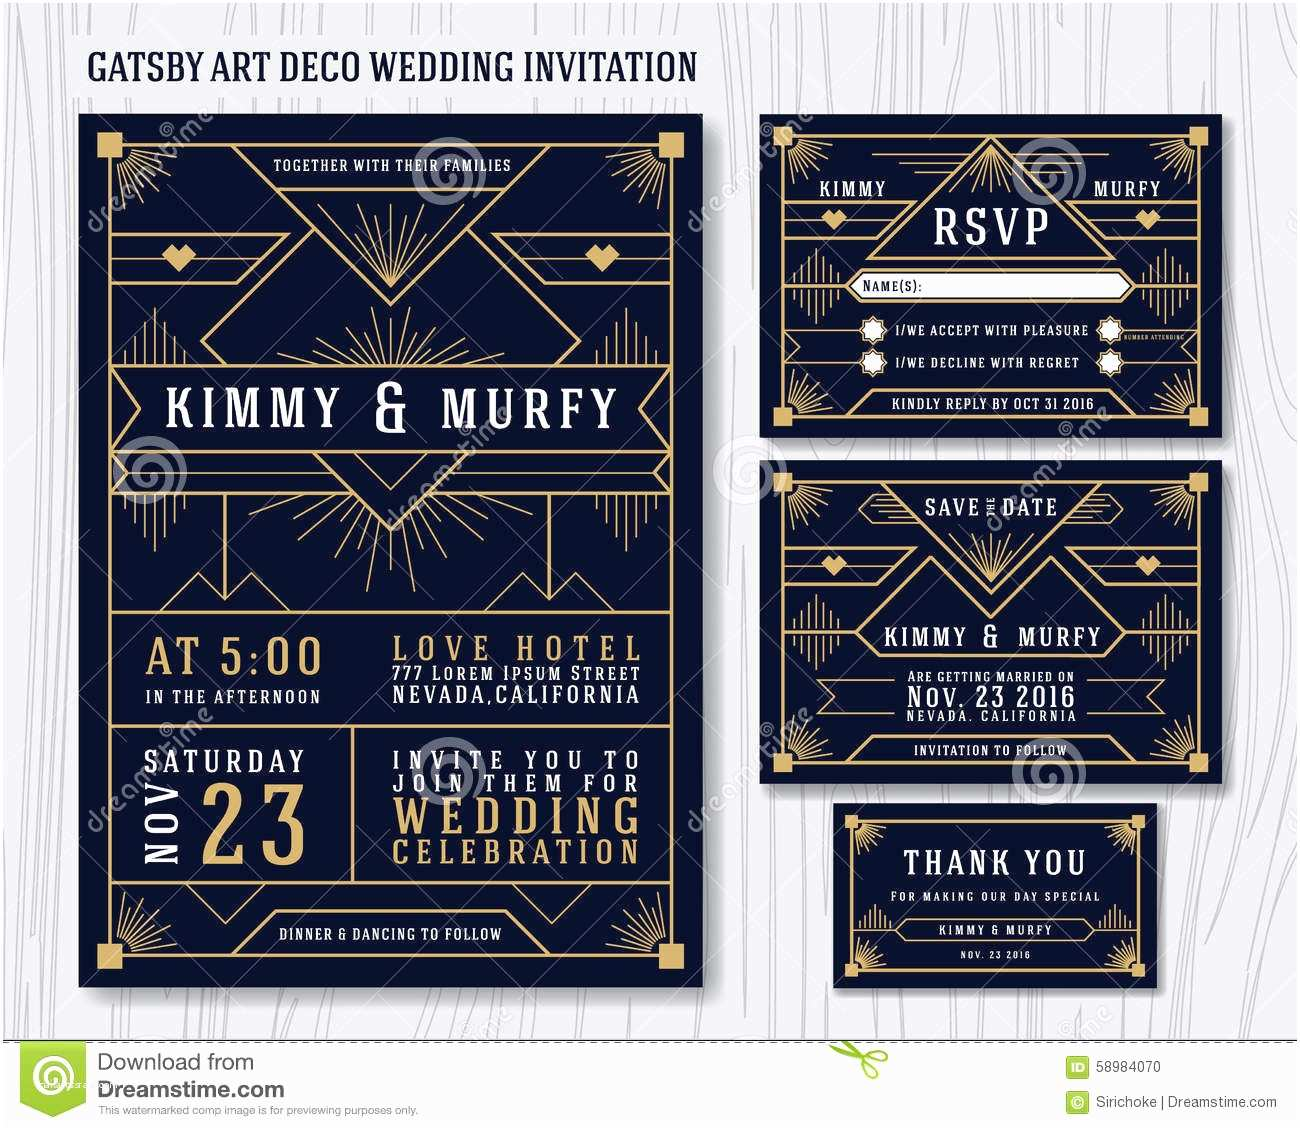 Art Deco Wedding Invitations Free Download Great Gatsby Art Deco Wedding Invitation Design Template